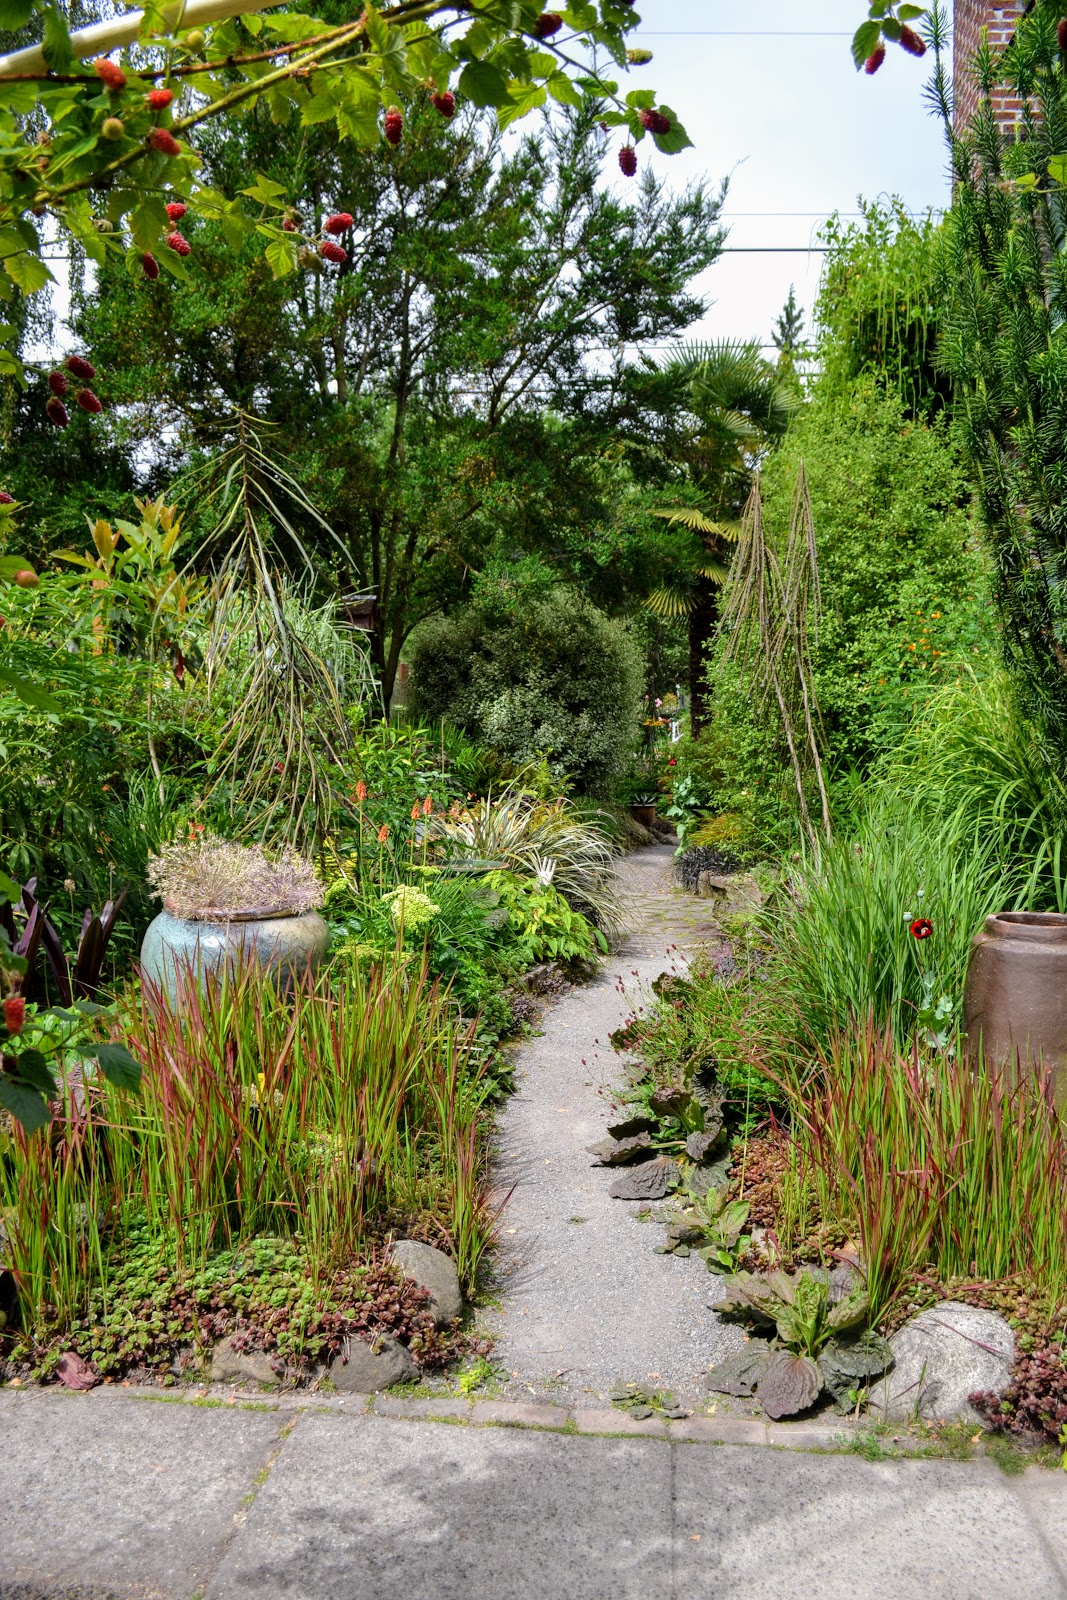 The Outlaw Gardener: The Garden of Julie King and Paul Smith